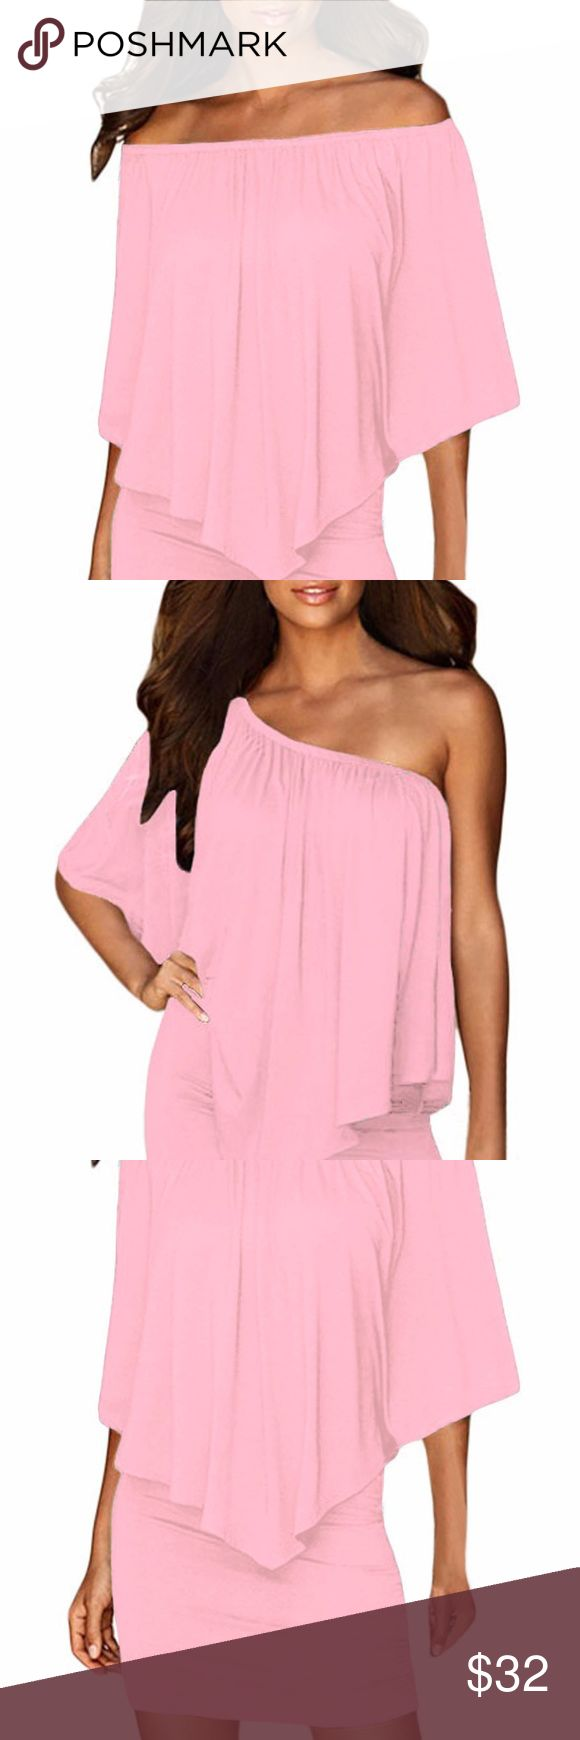 Multiple Dressing Layered Pink Mini Dress This Multiple Layered Mini Dress can be worn at the office or for a night out at a bar right after! The cute ruffle-layer top gives an  elegant, cute feel to the comfortable and over sized dress. The short length accentuates your curves with body-hugging silhouette, you are  sure to feel confident, sexy and elegant no matter the occasion.  22820-10 Dresses Mini